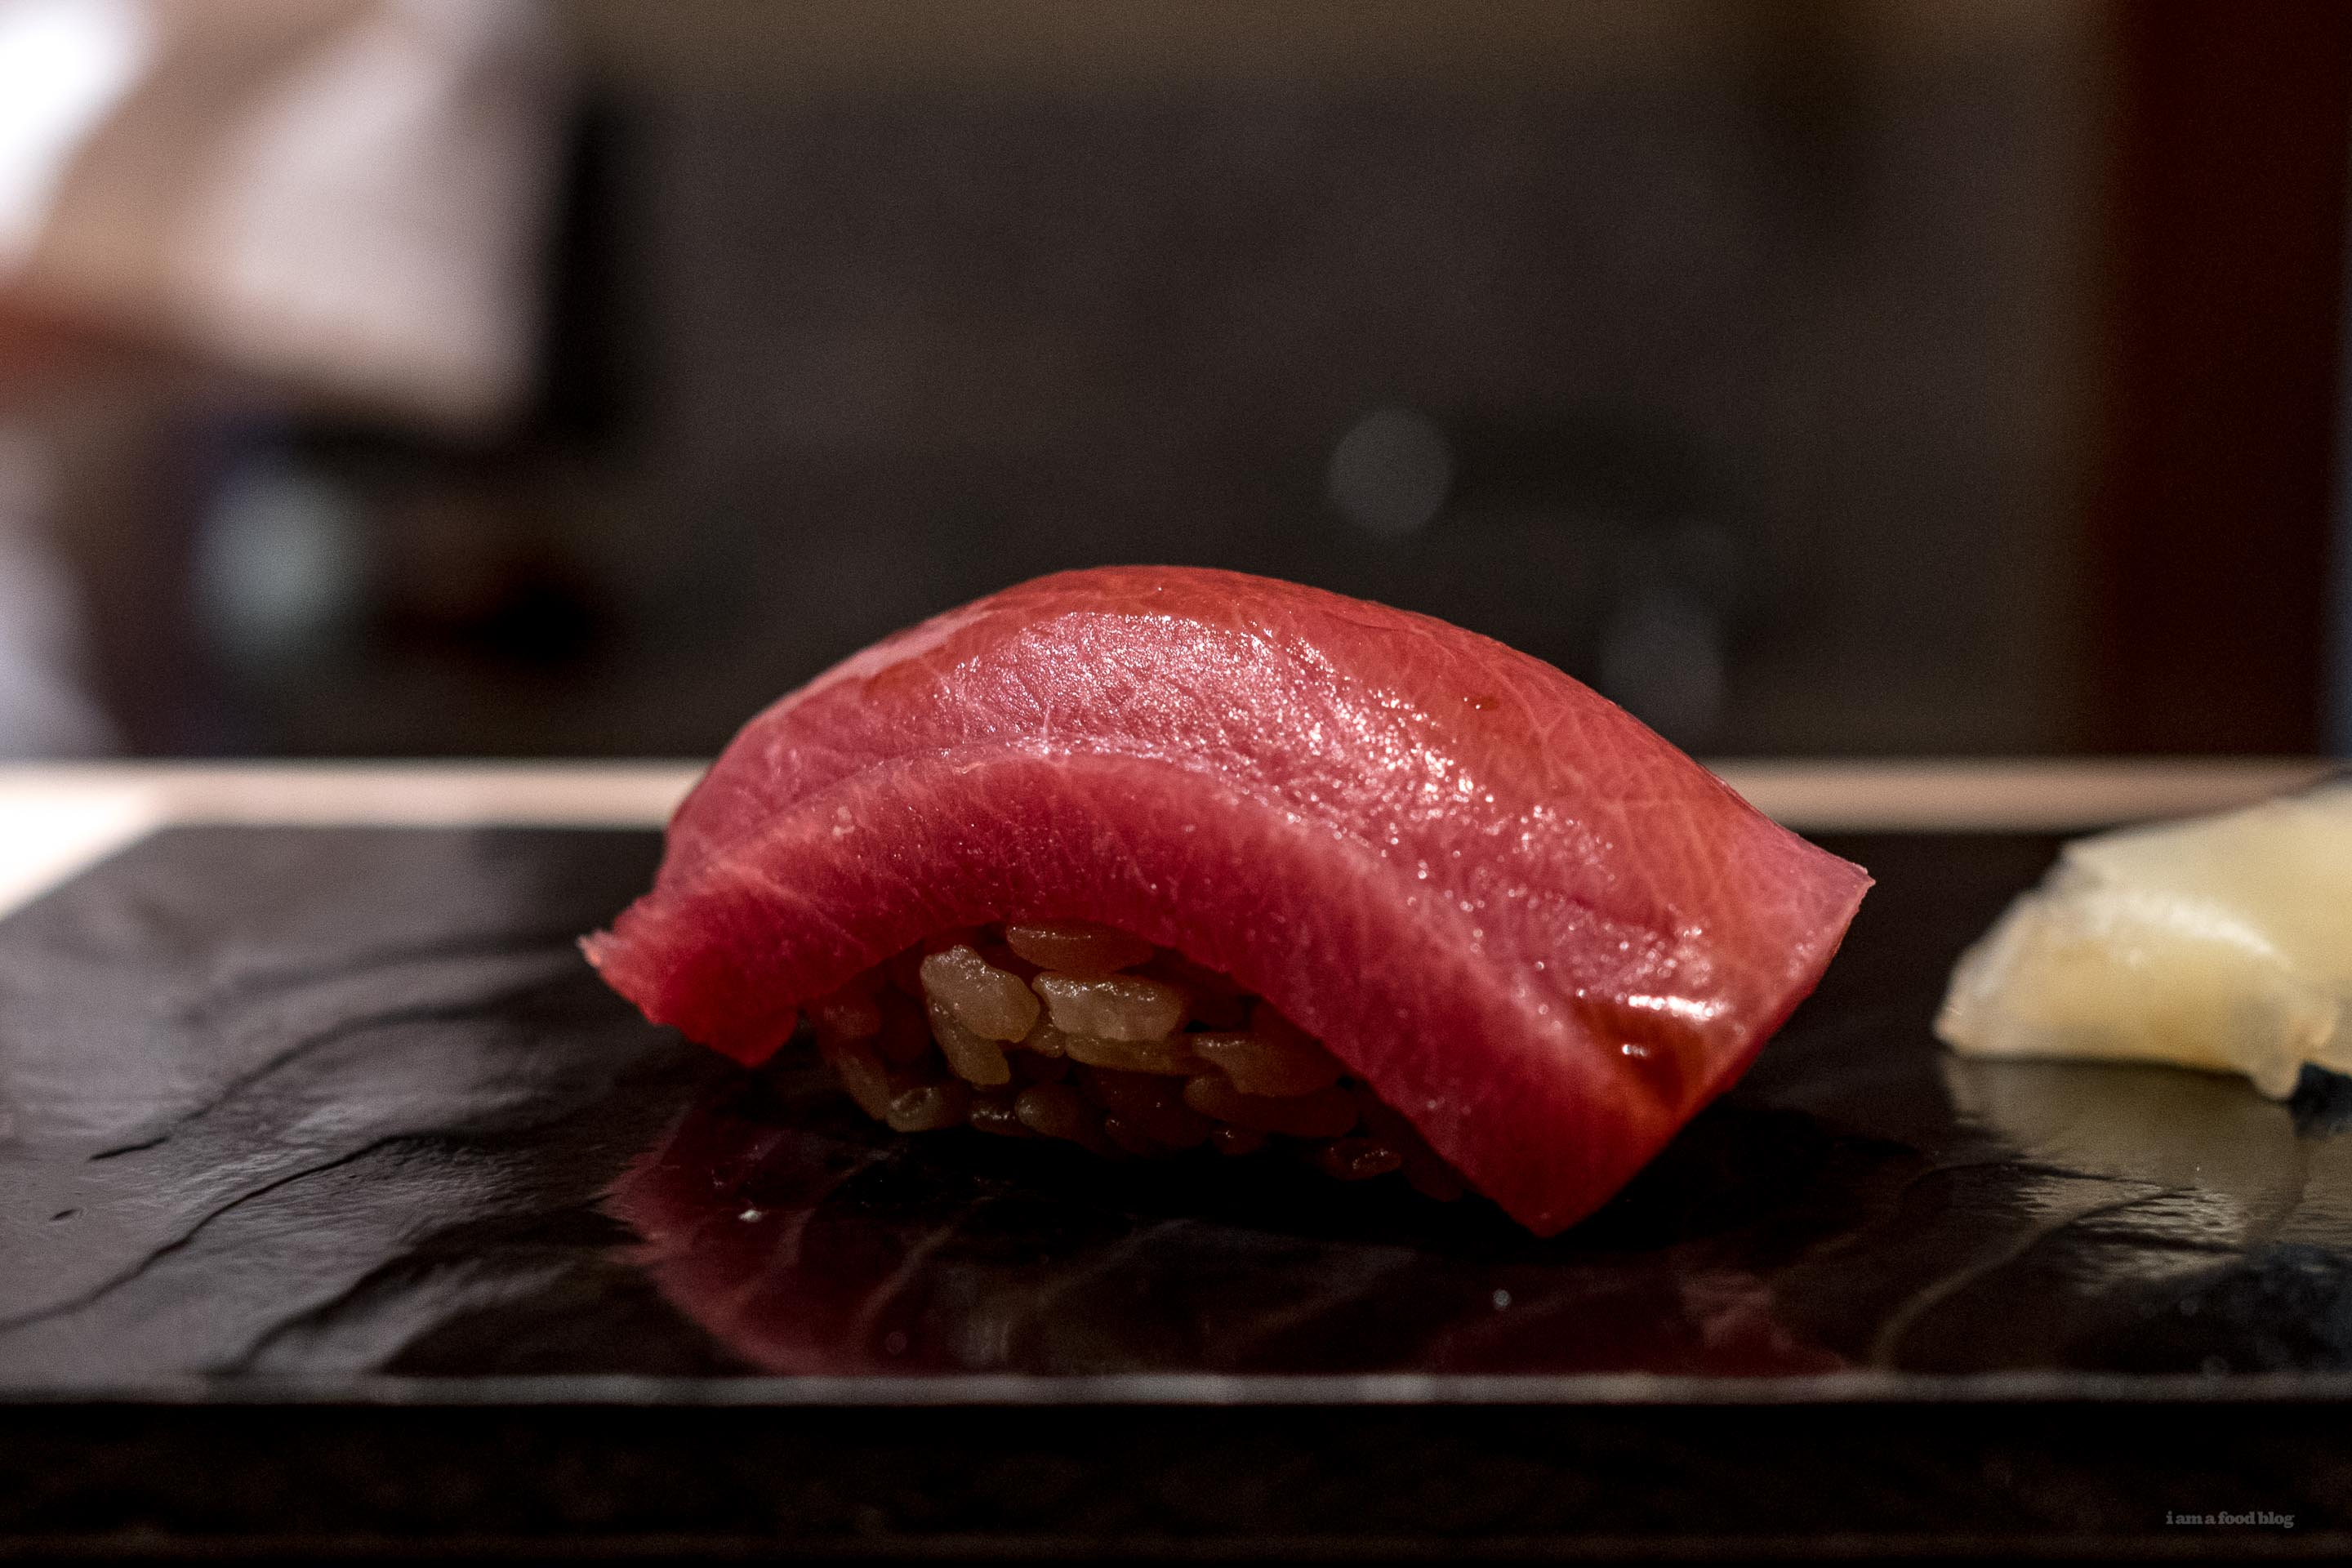 Tokyo Food Guide: Sushi Tokami and what it's like to eat high end Tokyo sushi